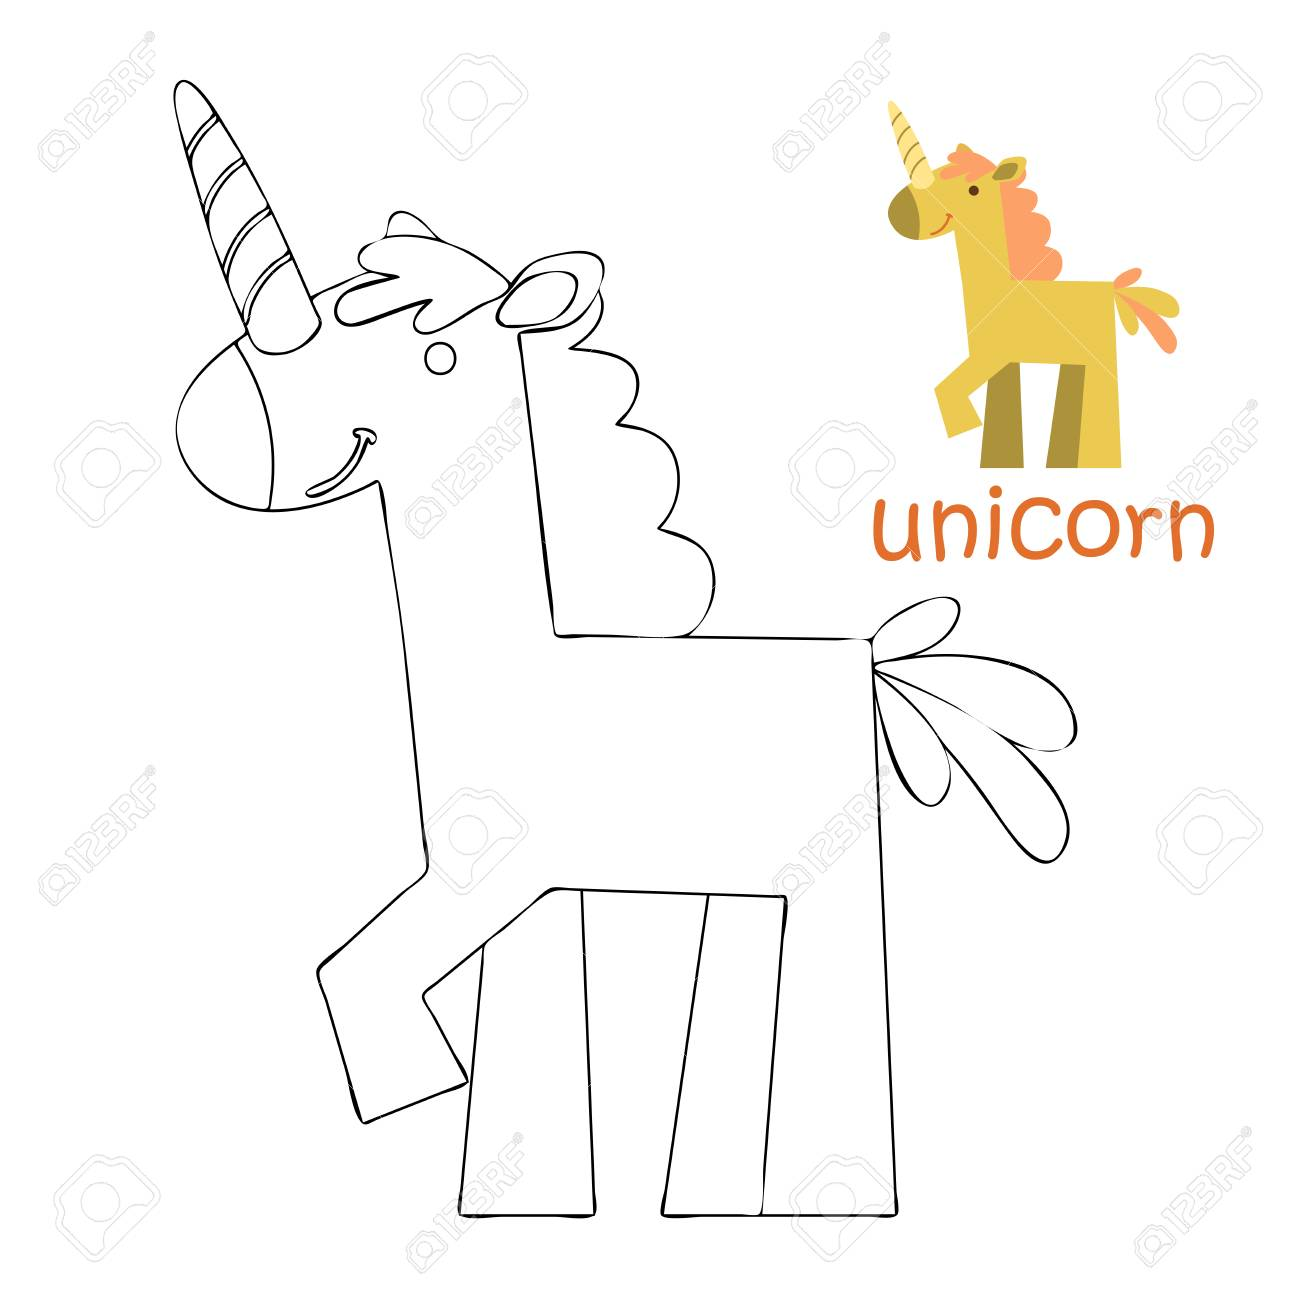 coloring book for kids coloring page unicorn royalty free cliparts